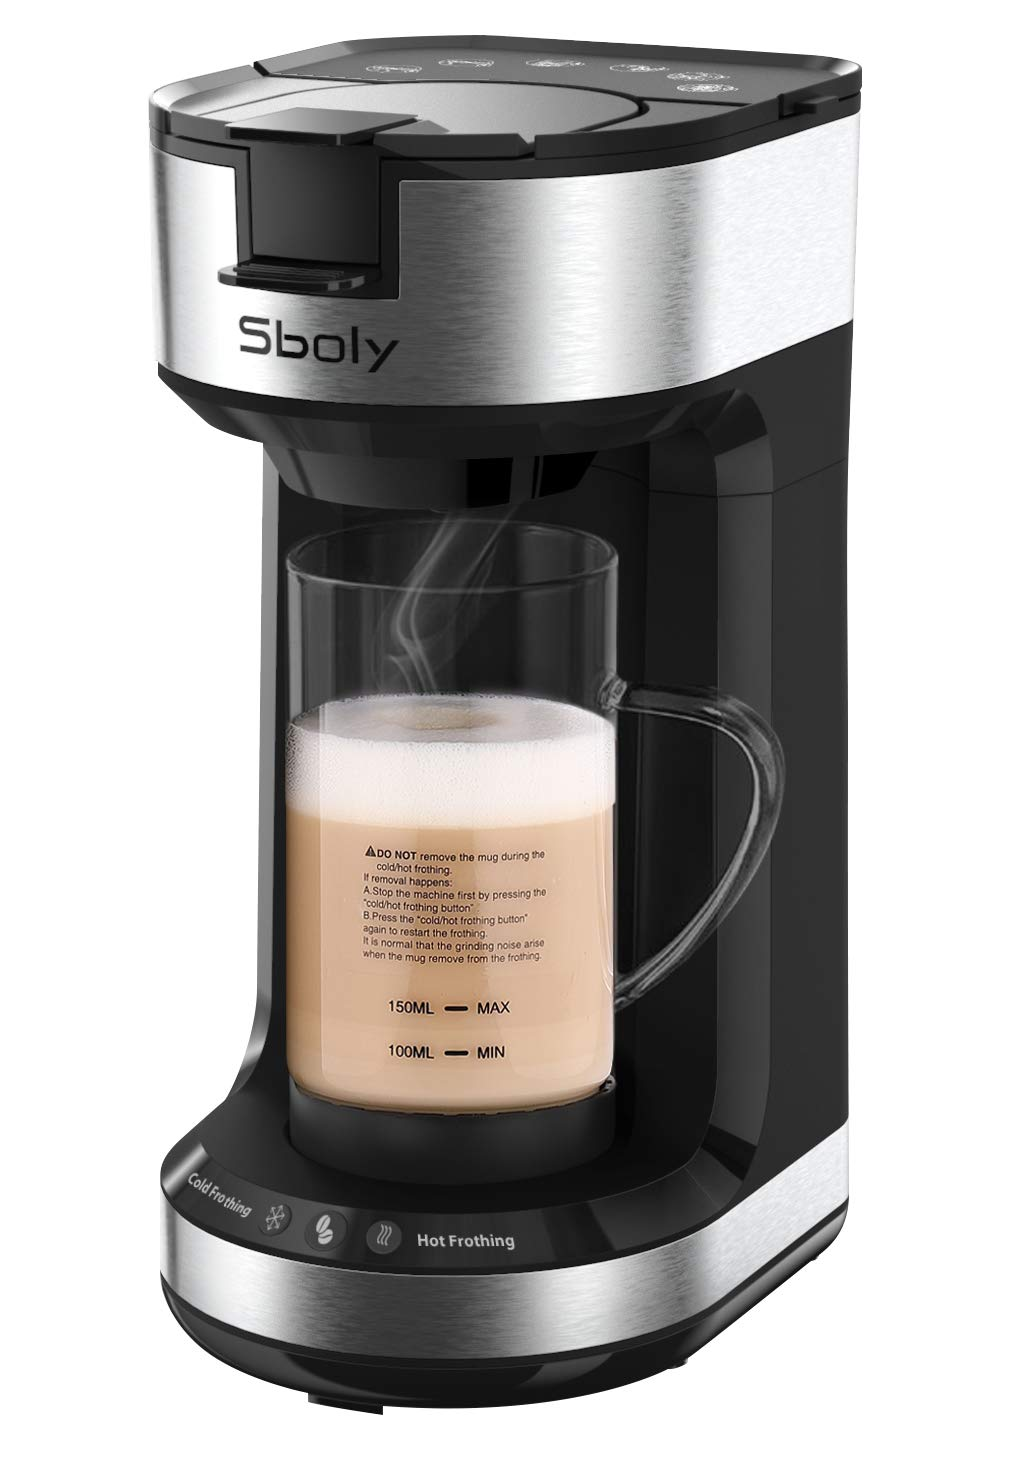 Single Serve Coffee Maker with Milk Frother, 2-Way Coffee Machine for K-Cup Pods & Ground Coffee, Brew and Froth for Cappuccino and Latte, with 20 oz Glass Frothing Mug by Sboly by Sboly